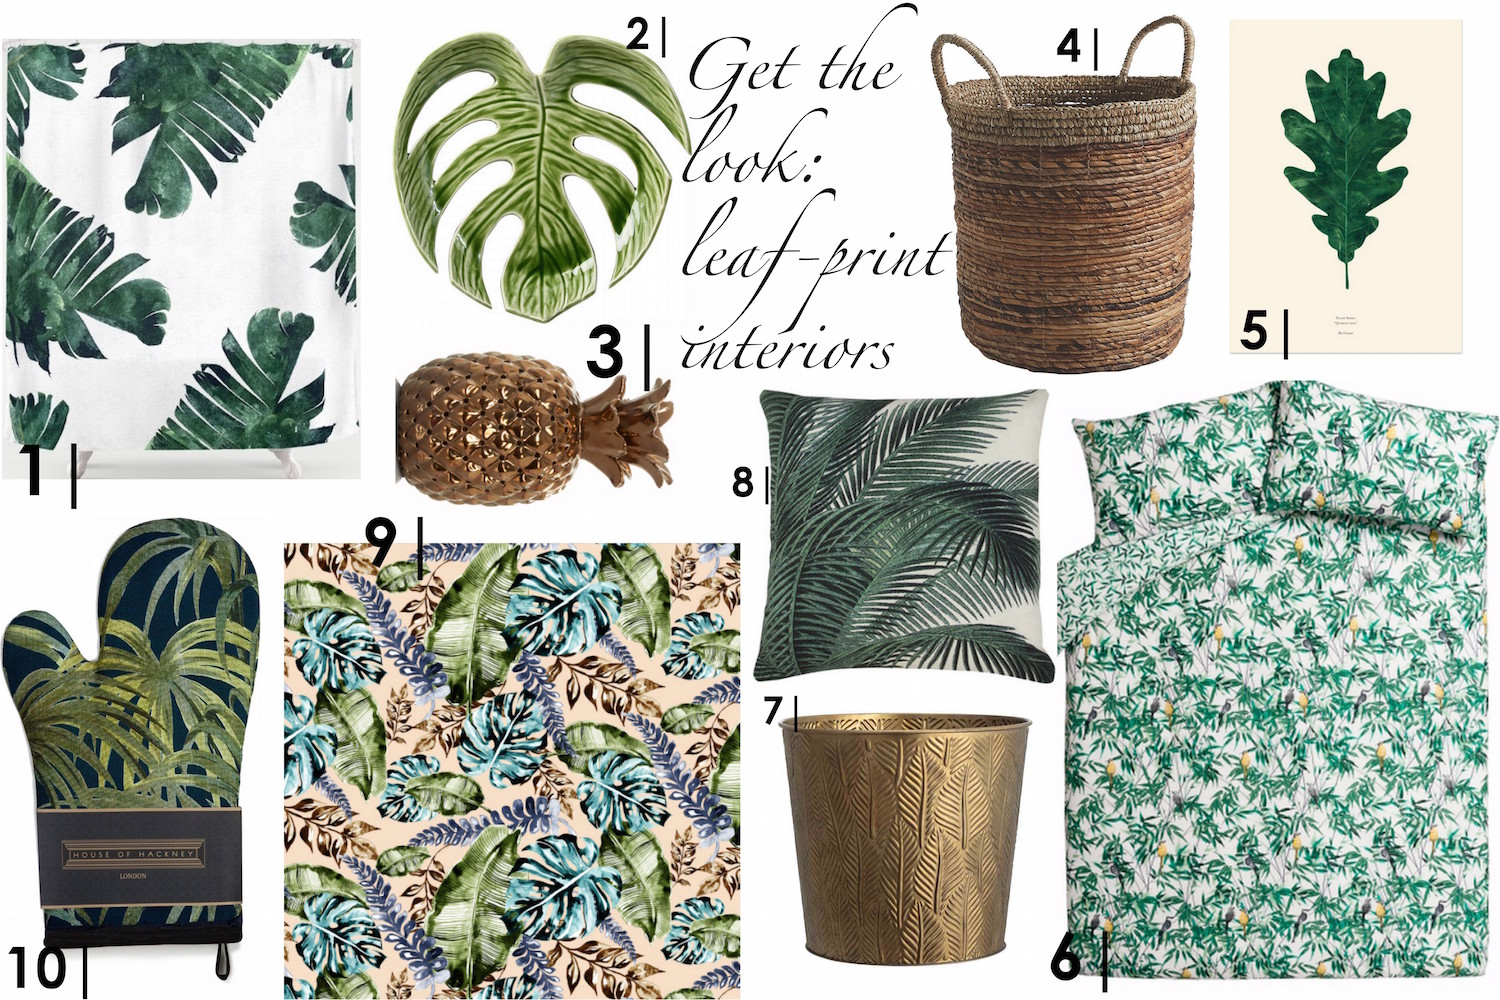 Get the Look: Leaf-Print Interiors   Wolf & Stag